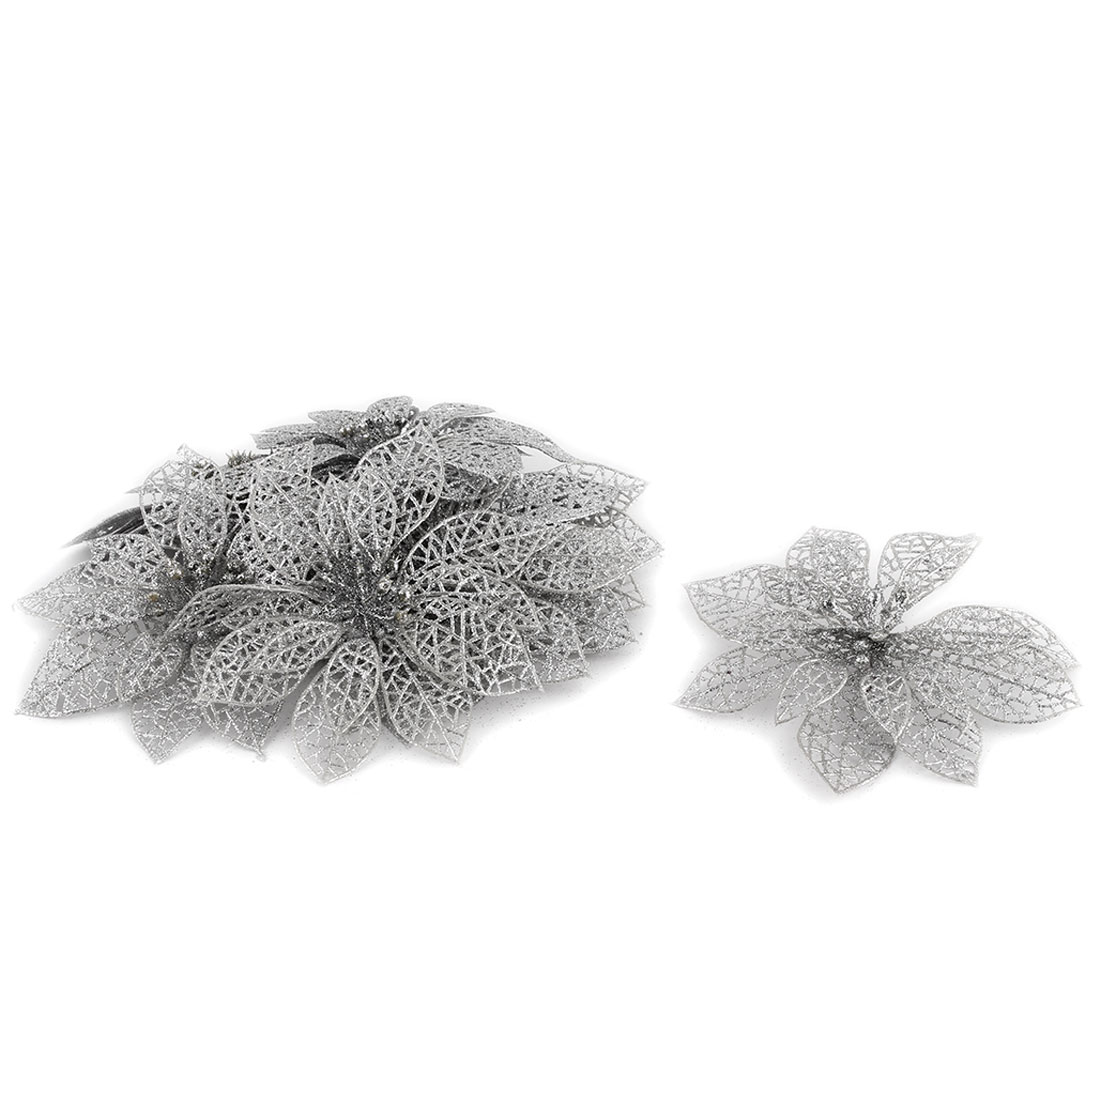 Festival Christmas Tree Artificial Glitter Hanging Flower Silver Tone 10 PCS